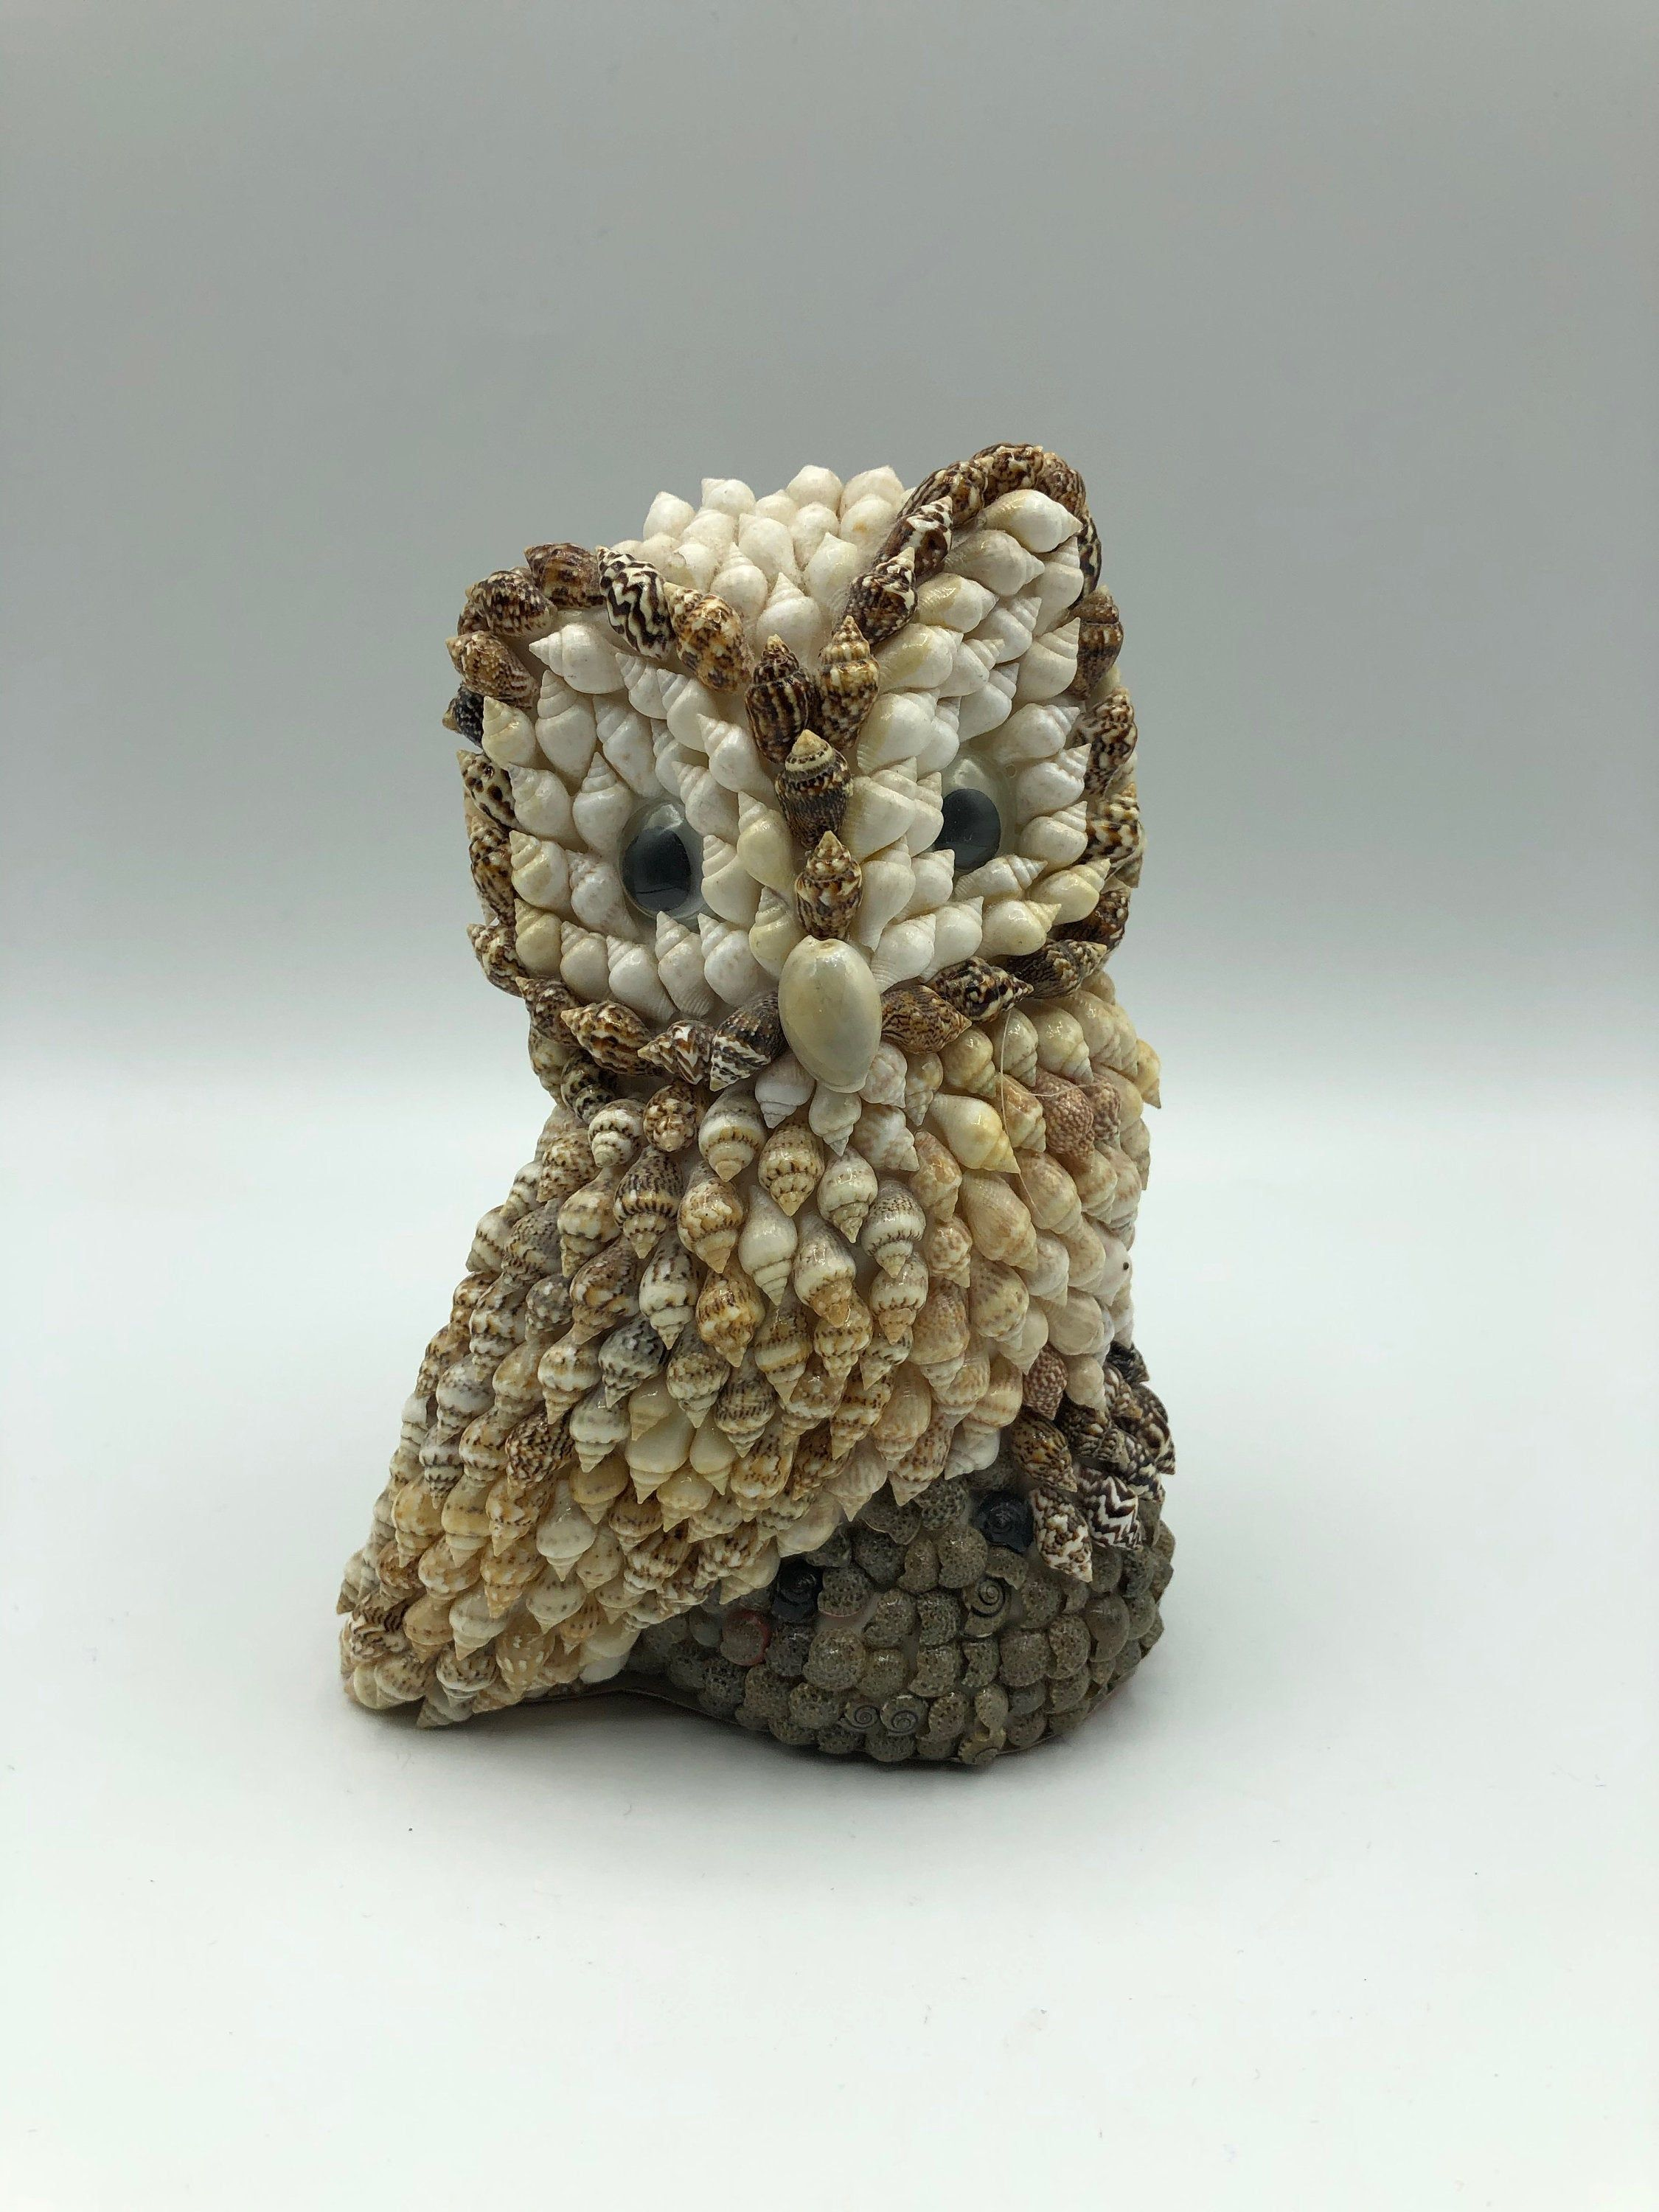 Vintage Shell Art Owl Seashell Handmade Ocean Seaside Retro Souvenir Novelty Beach Home Decor Owl Figurine Statue Knick Knack Kitsch Owls #knickknack